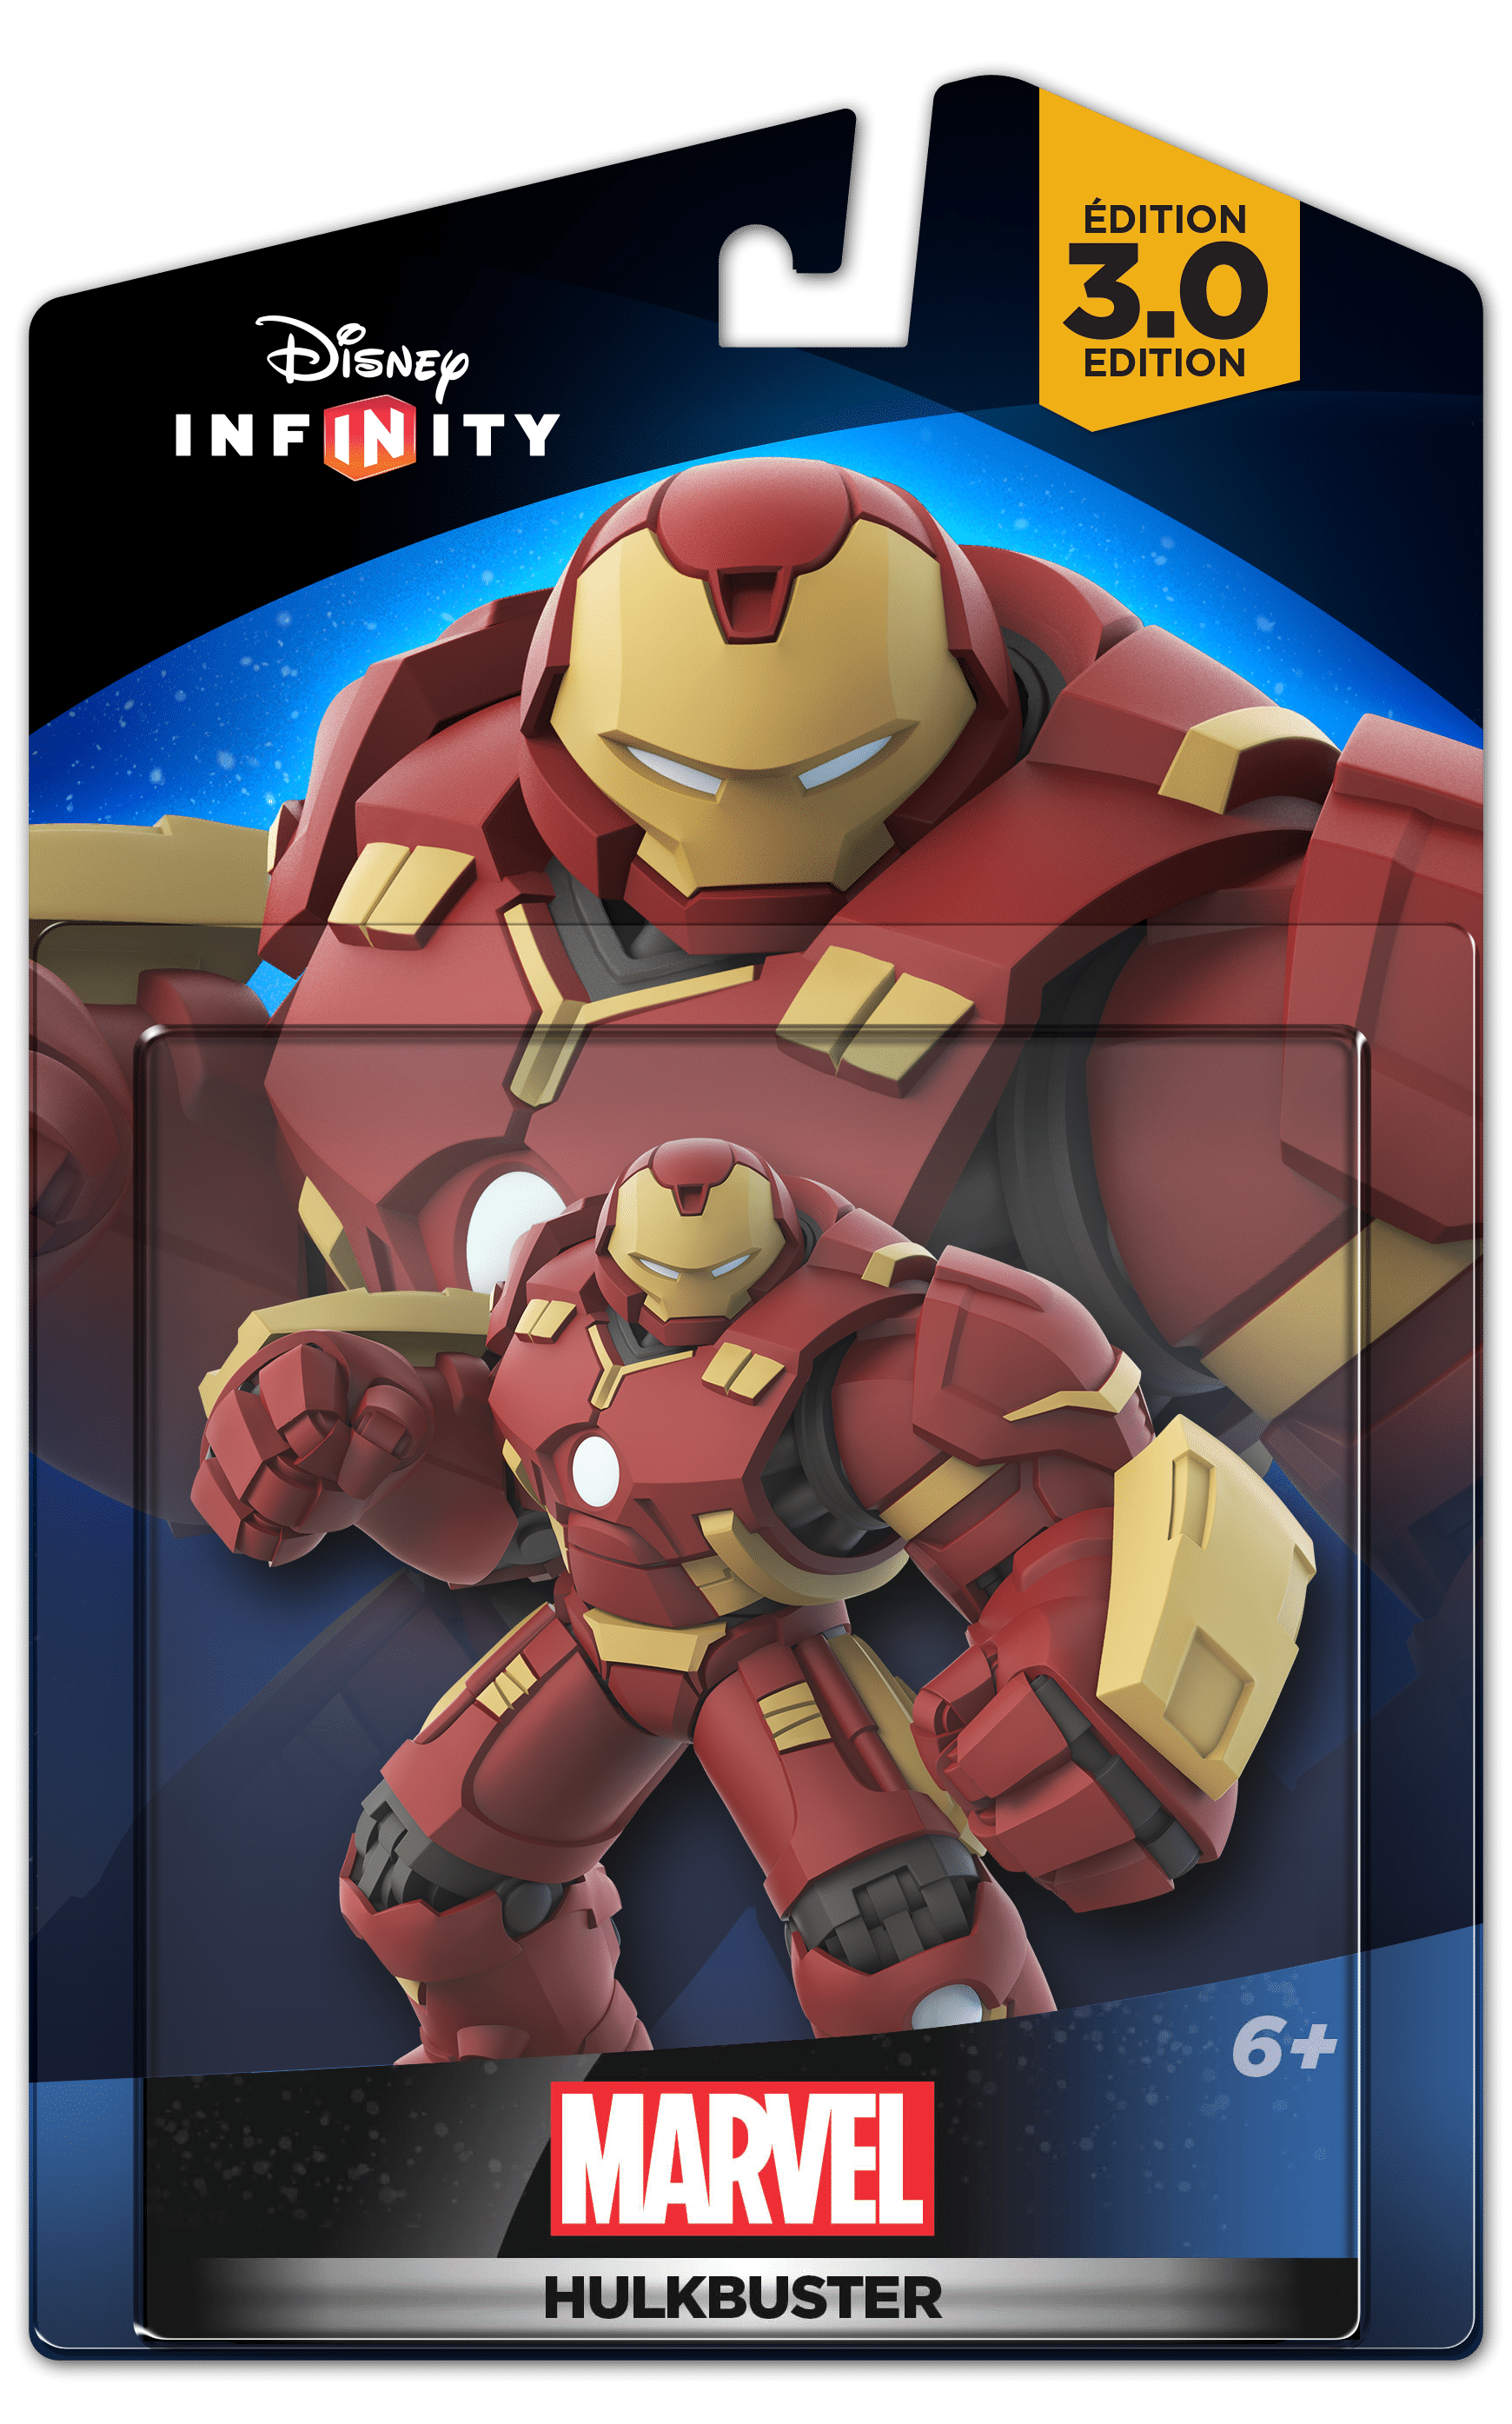 INF3_MAR_HulkBuster_PS